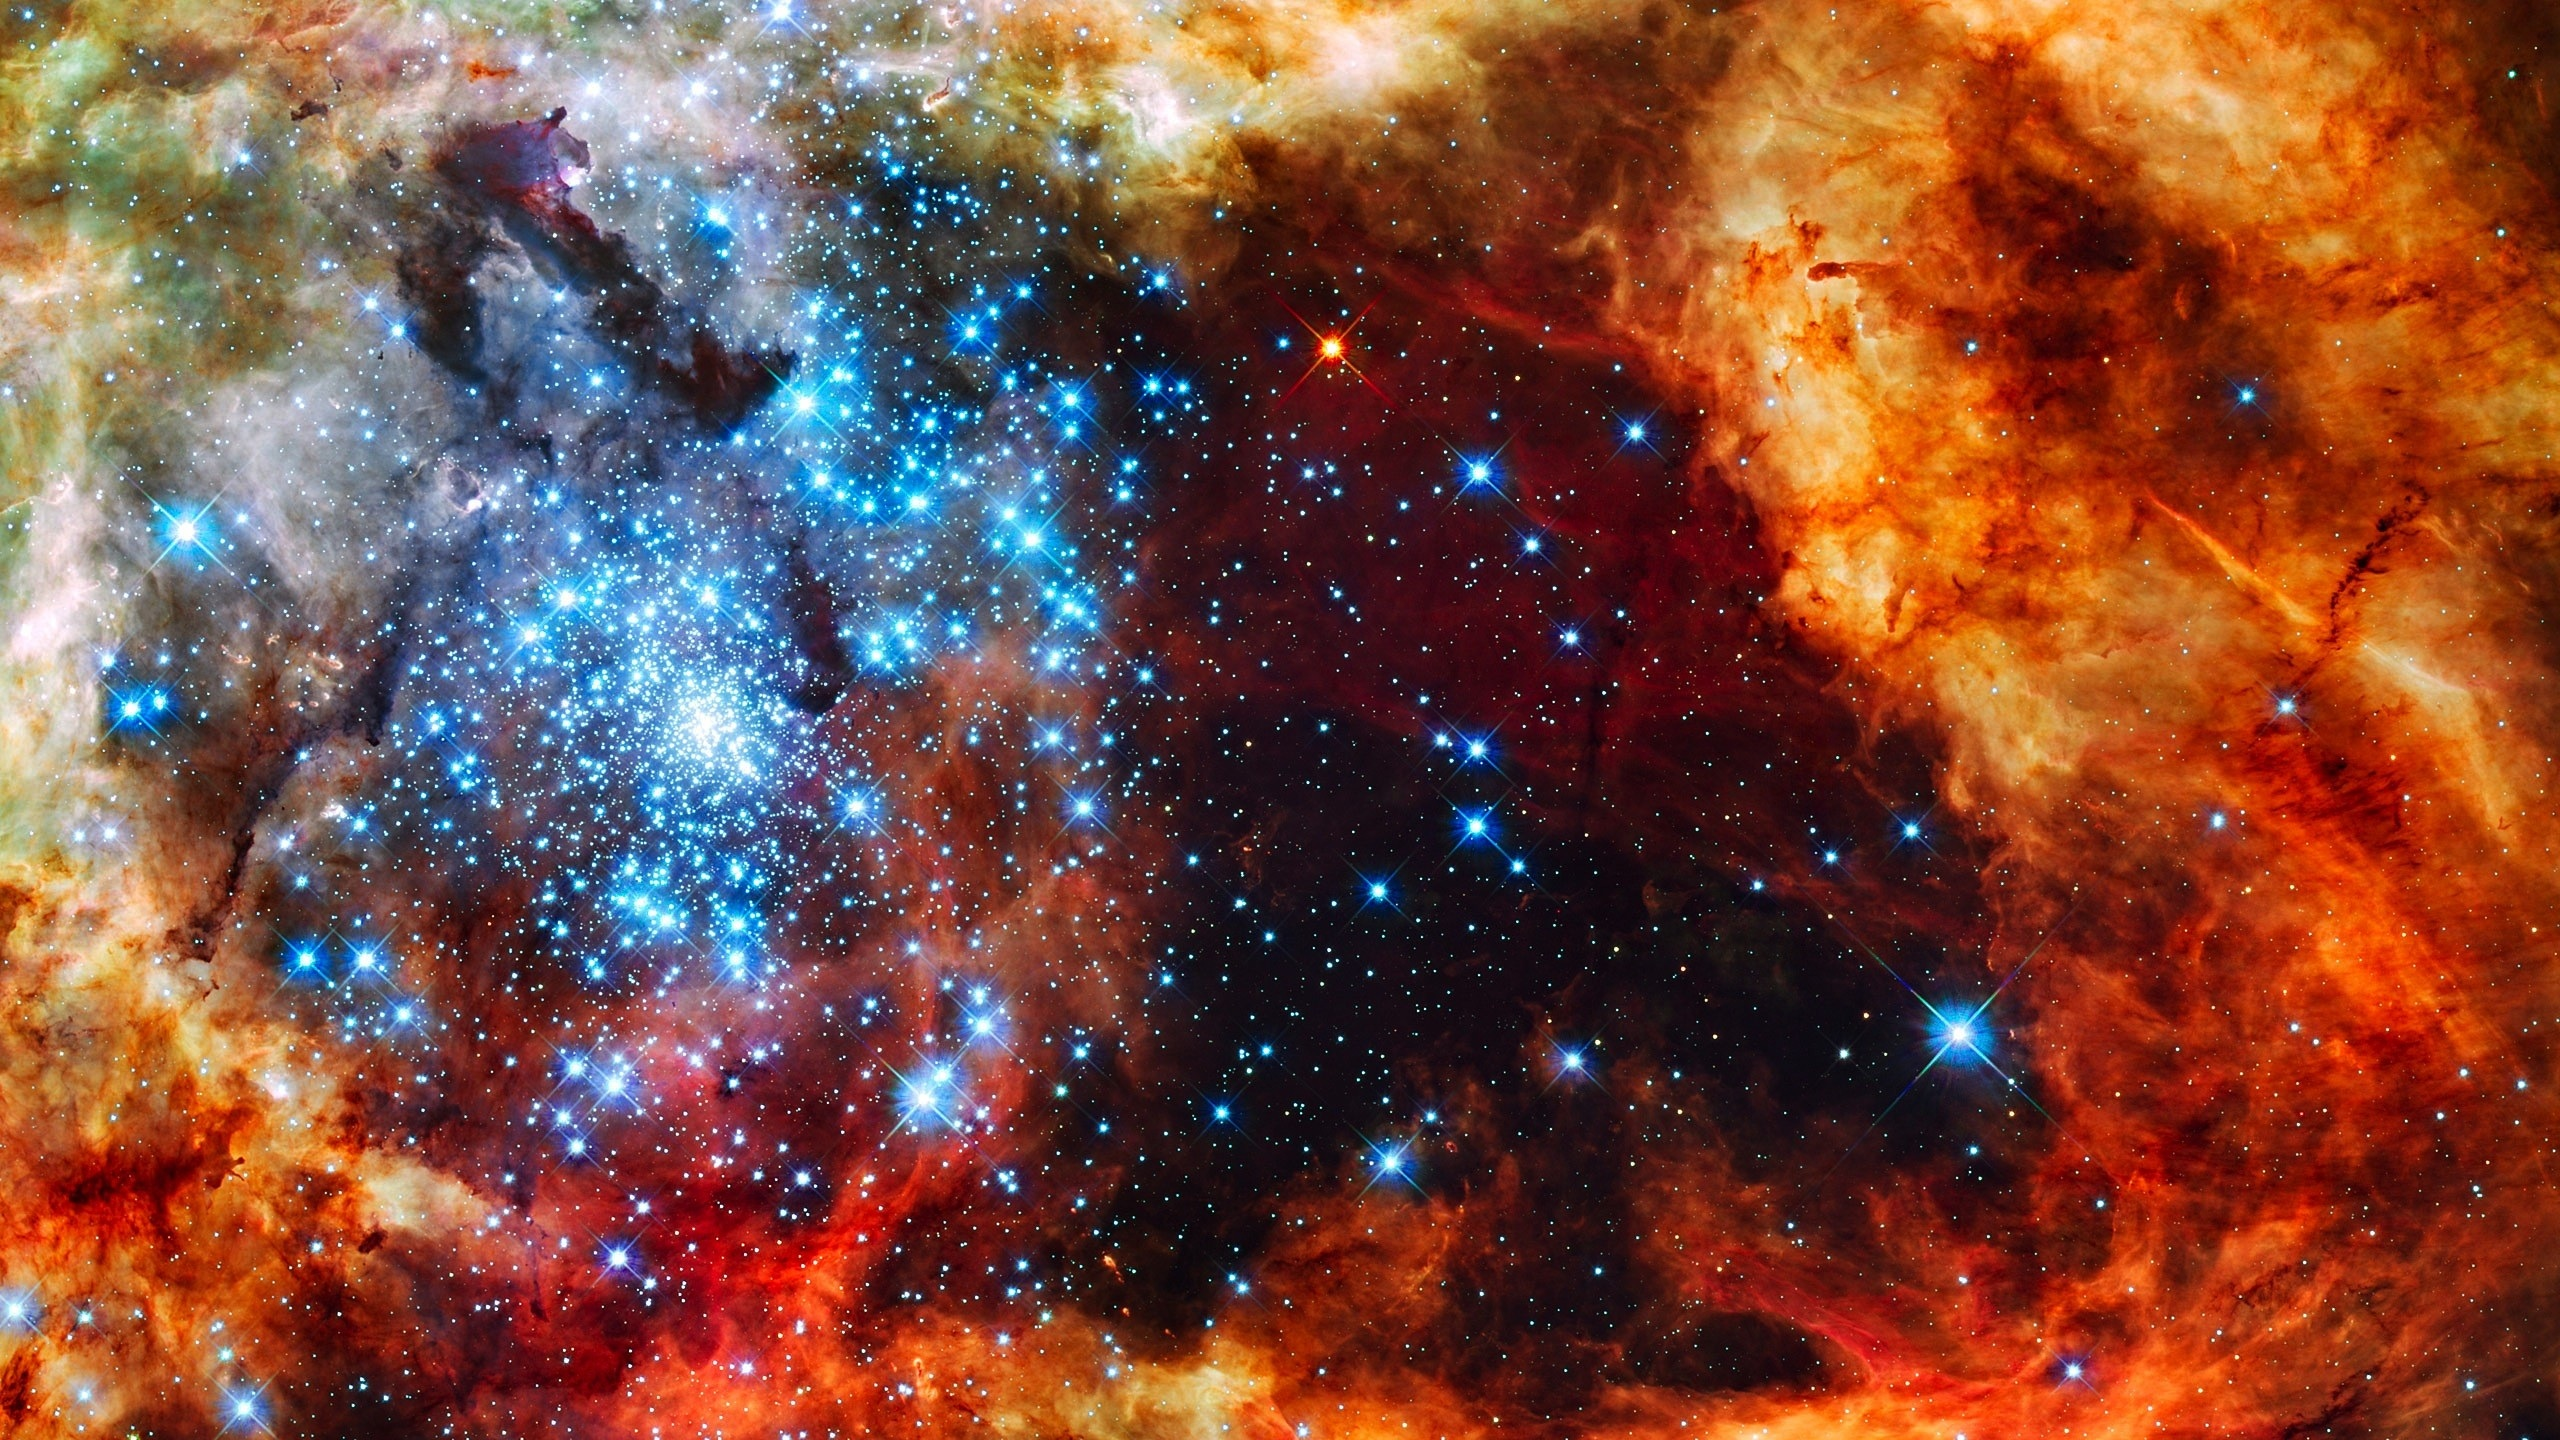 Wallpaper starry space 2560x1440 qhd picture image - Space 2560 x 1440 ...